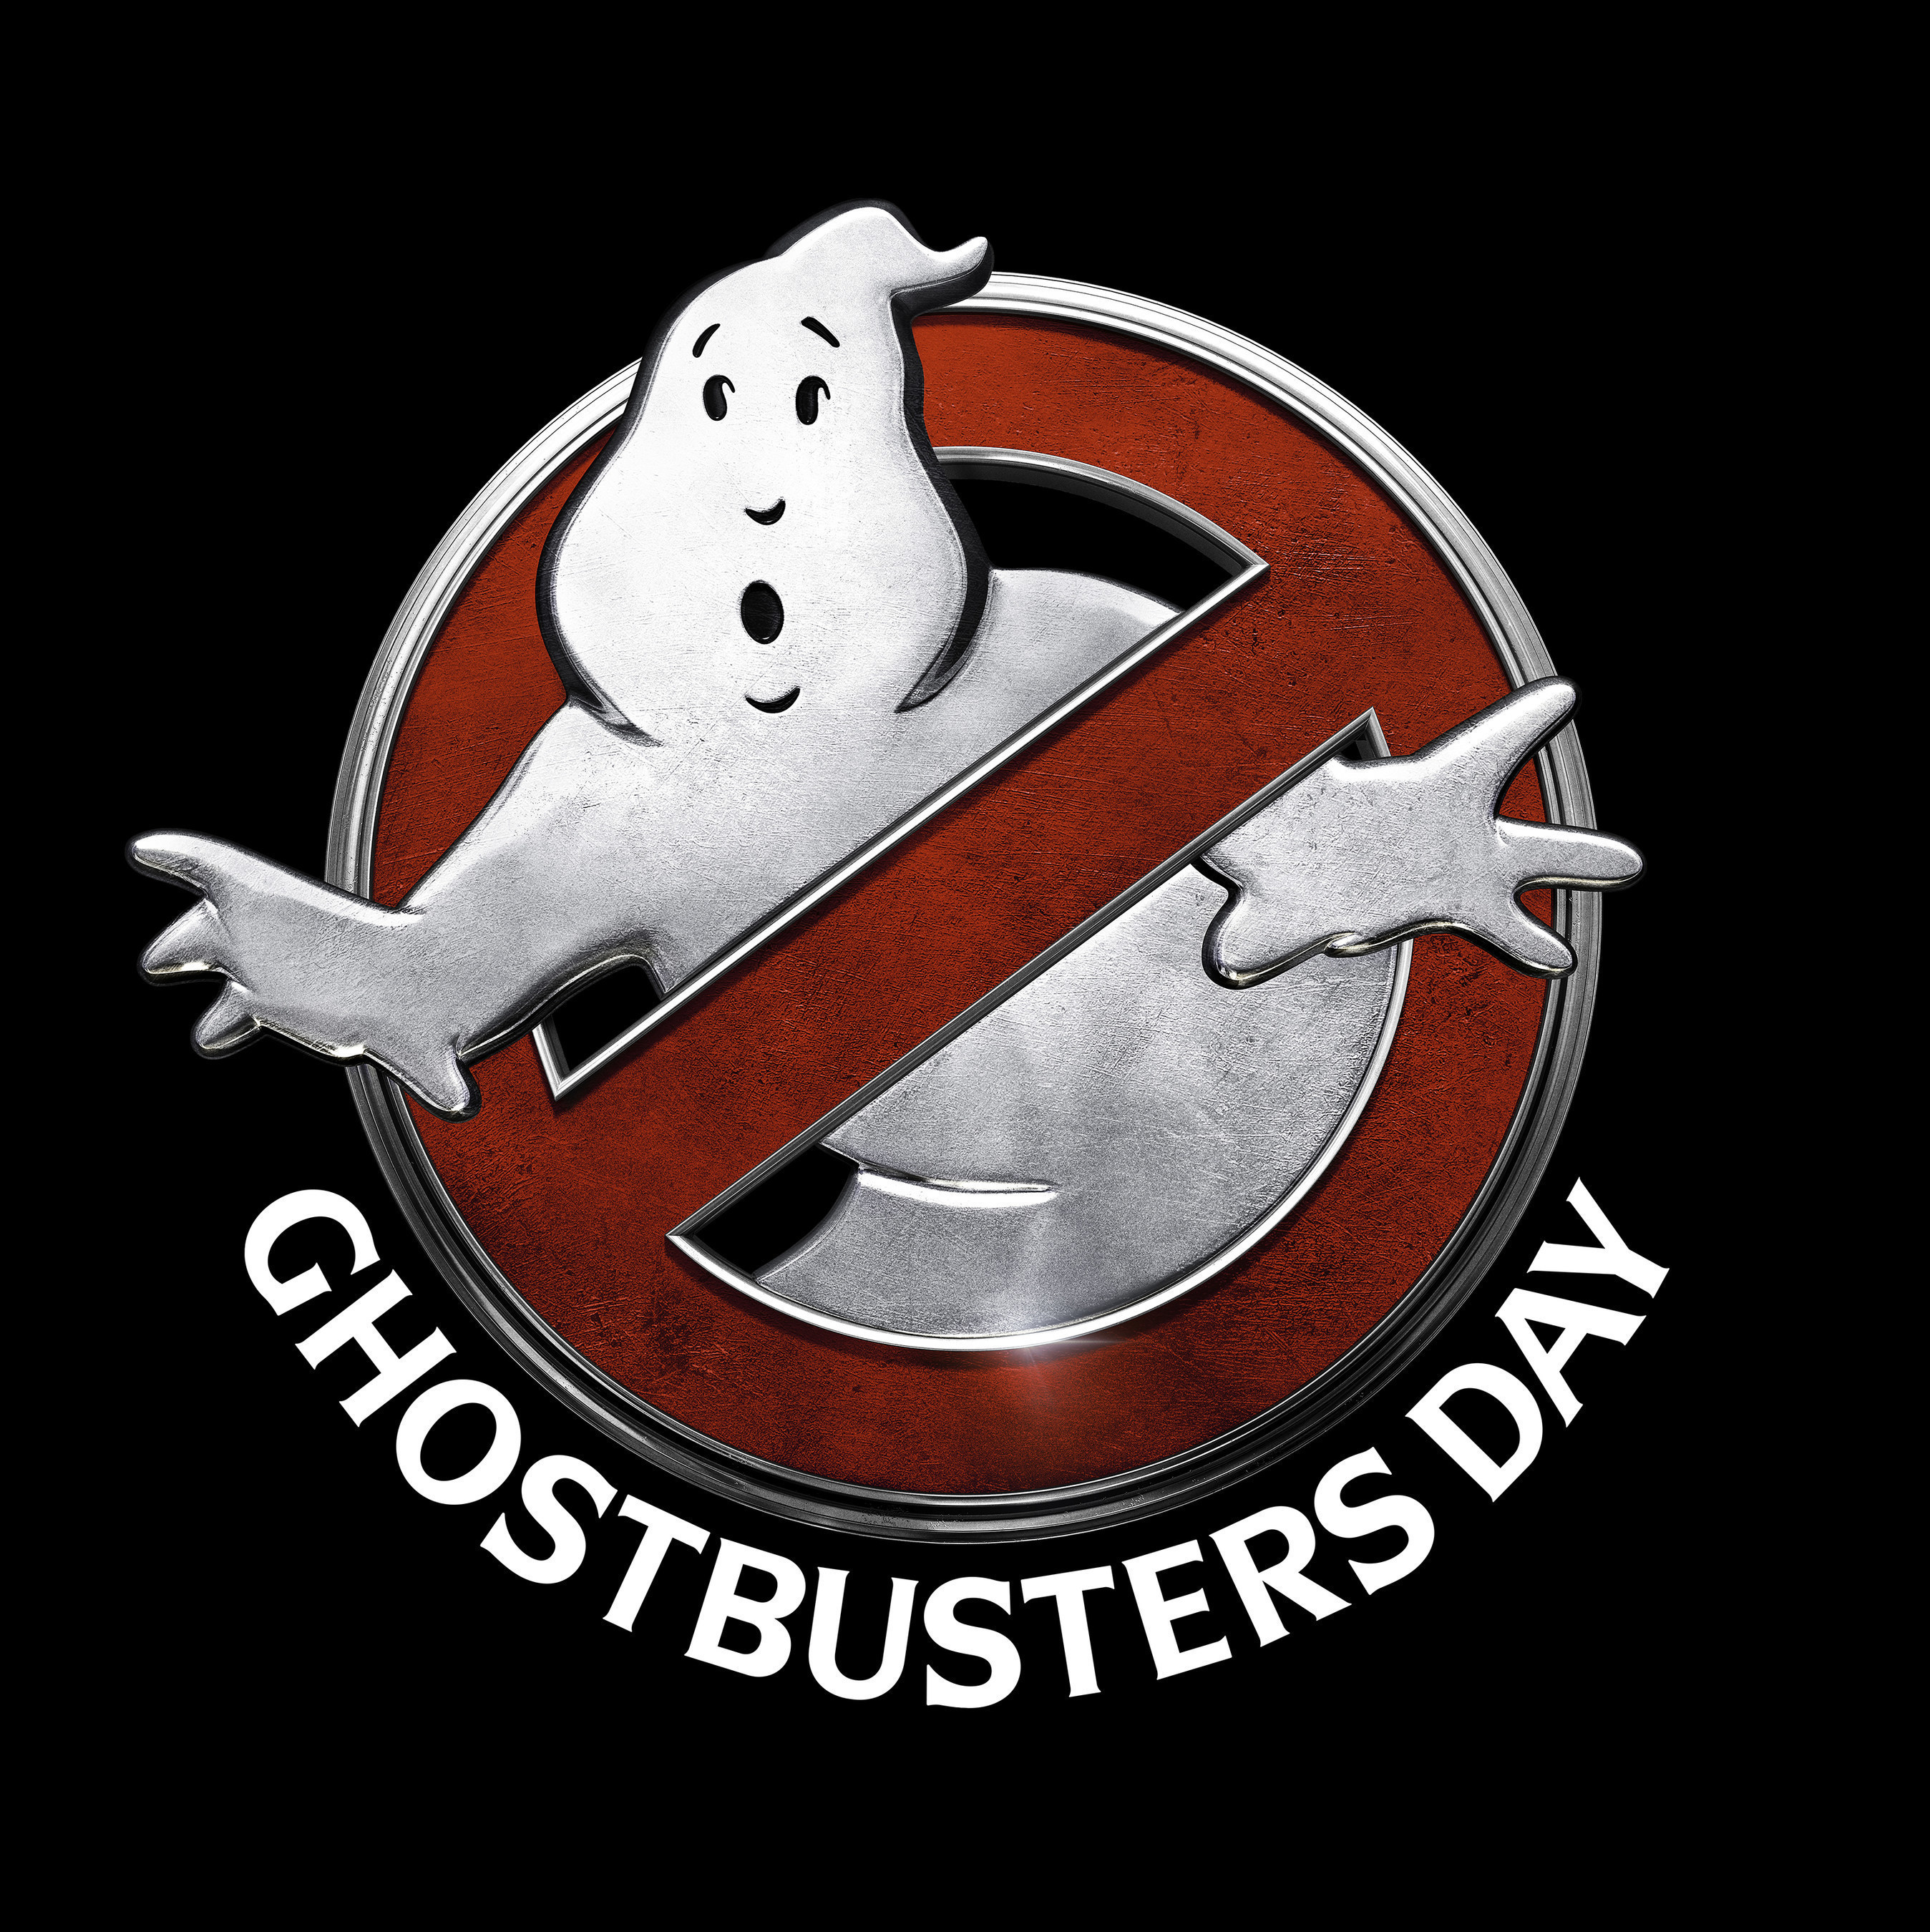 GHOSTBUSTERS DAY will be June 8, 2016.